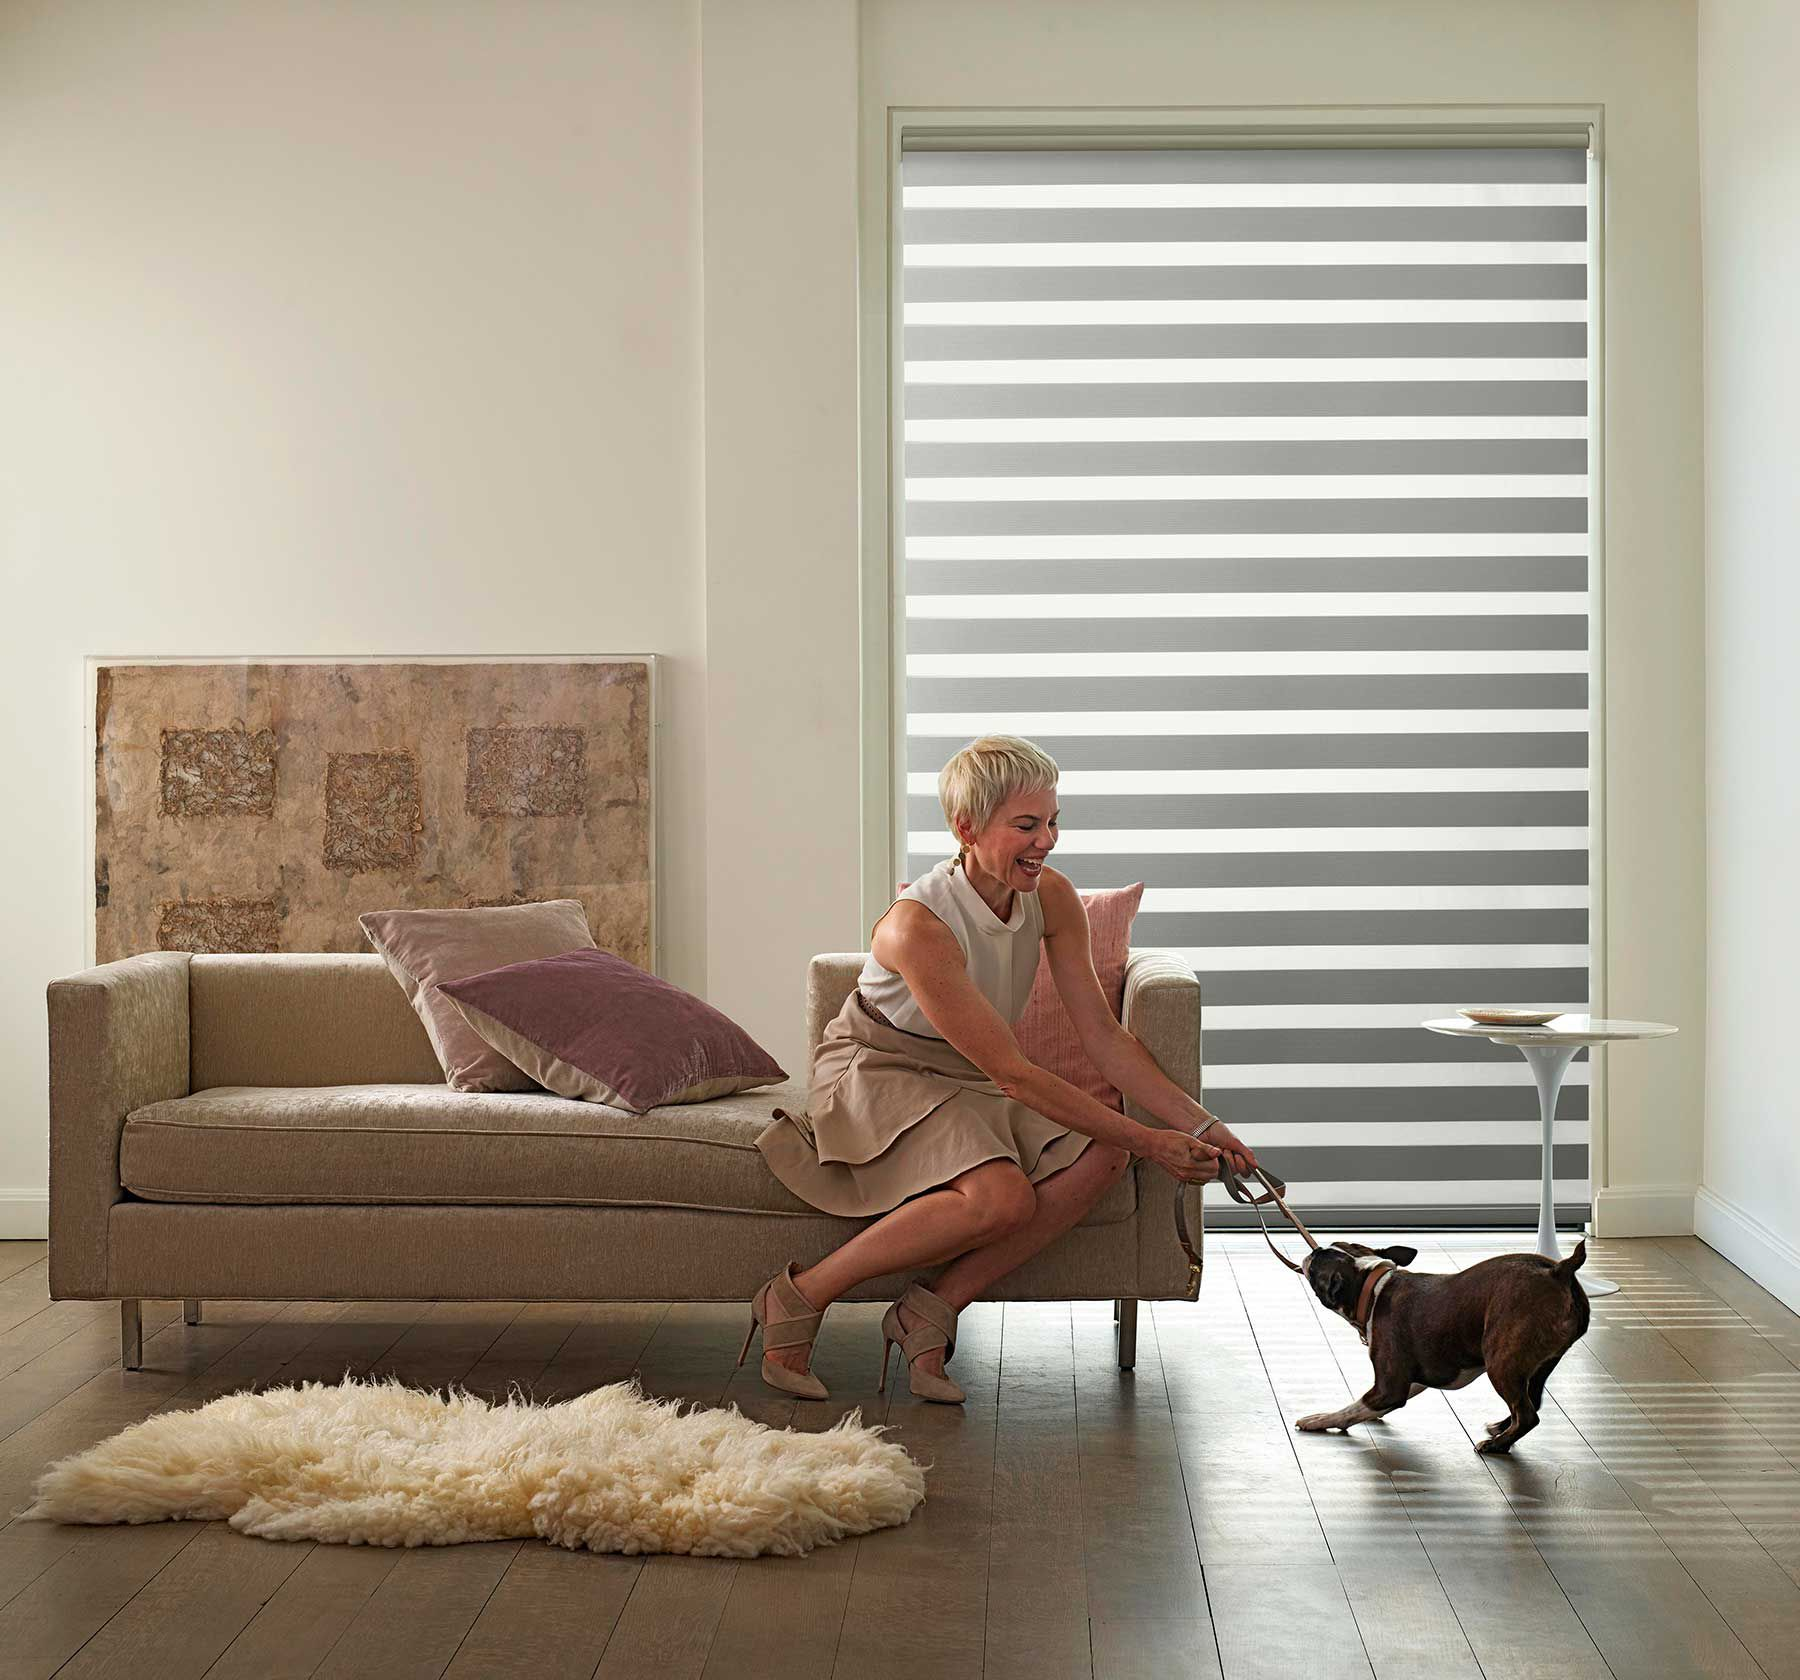 LEVOLOR Blinds, Print Campaign, with Bruno. photographer Laurie Frankel